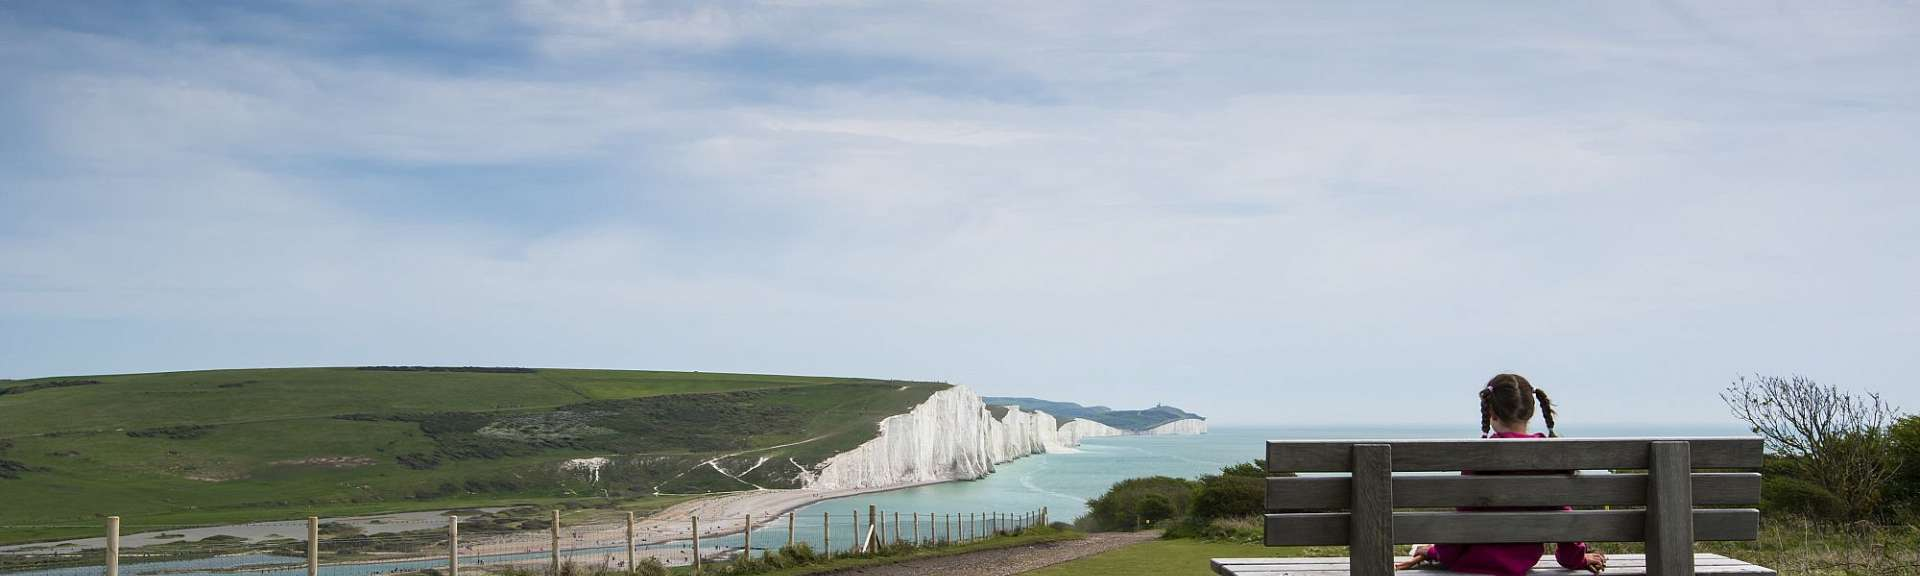 East Sussex: Seven Sisters Cliffs